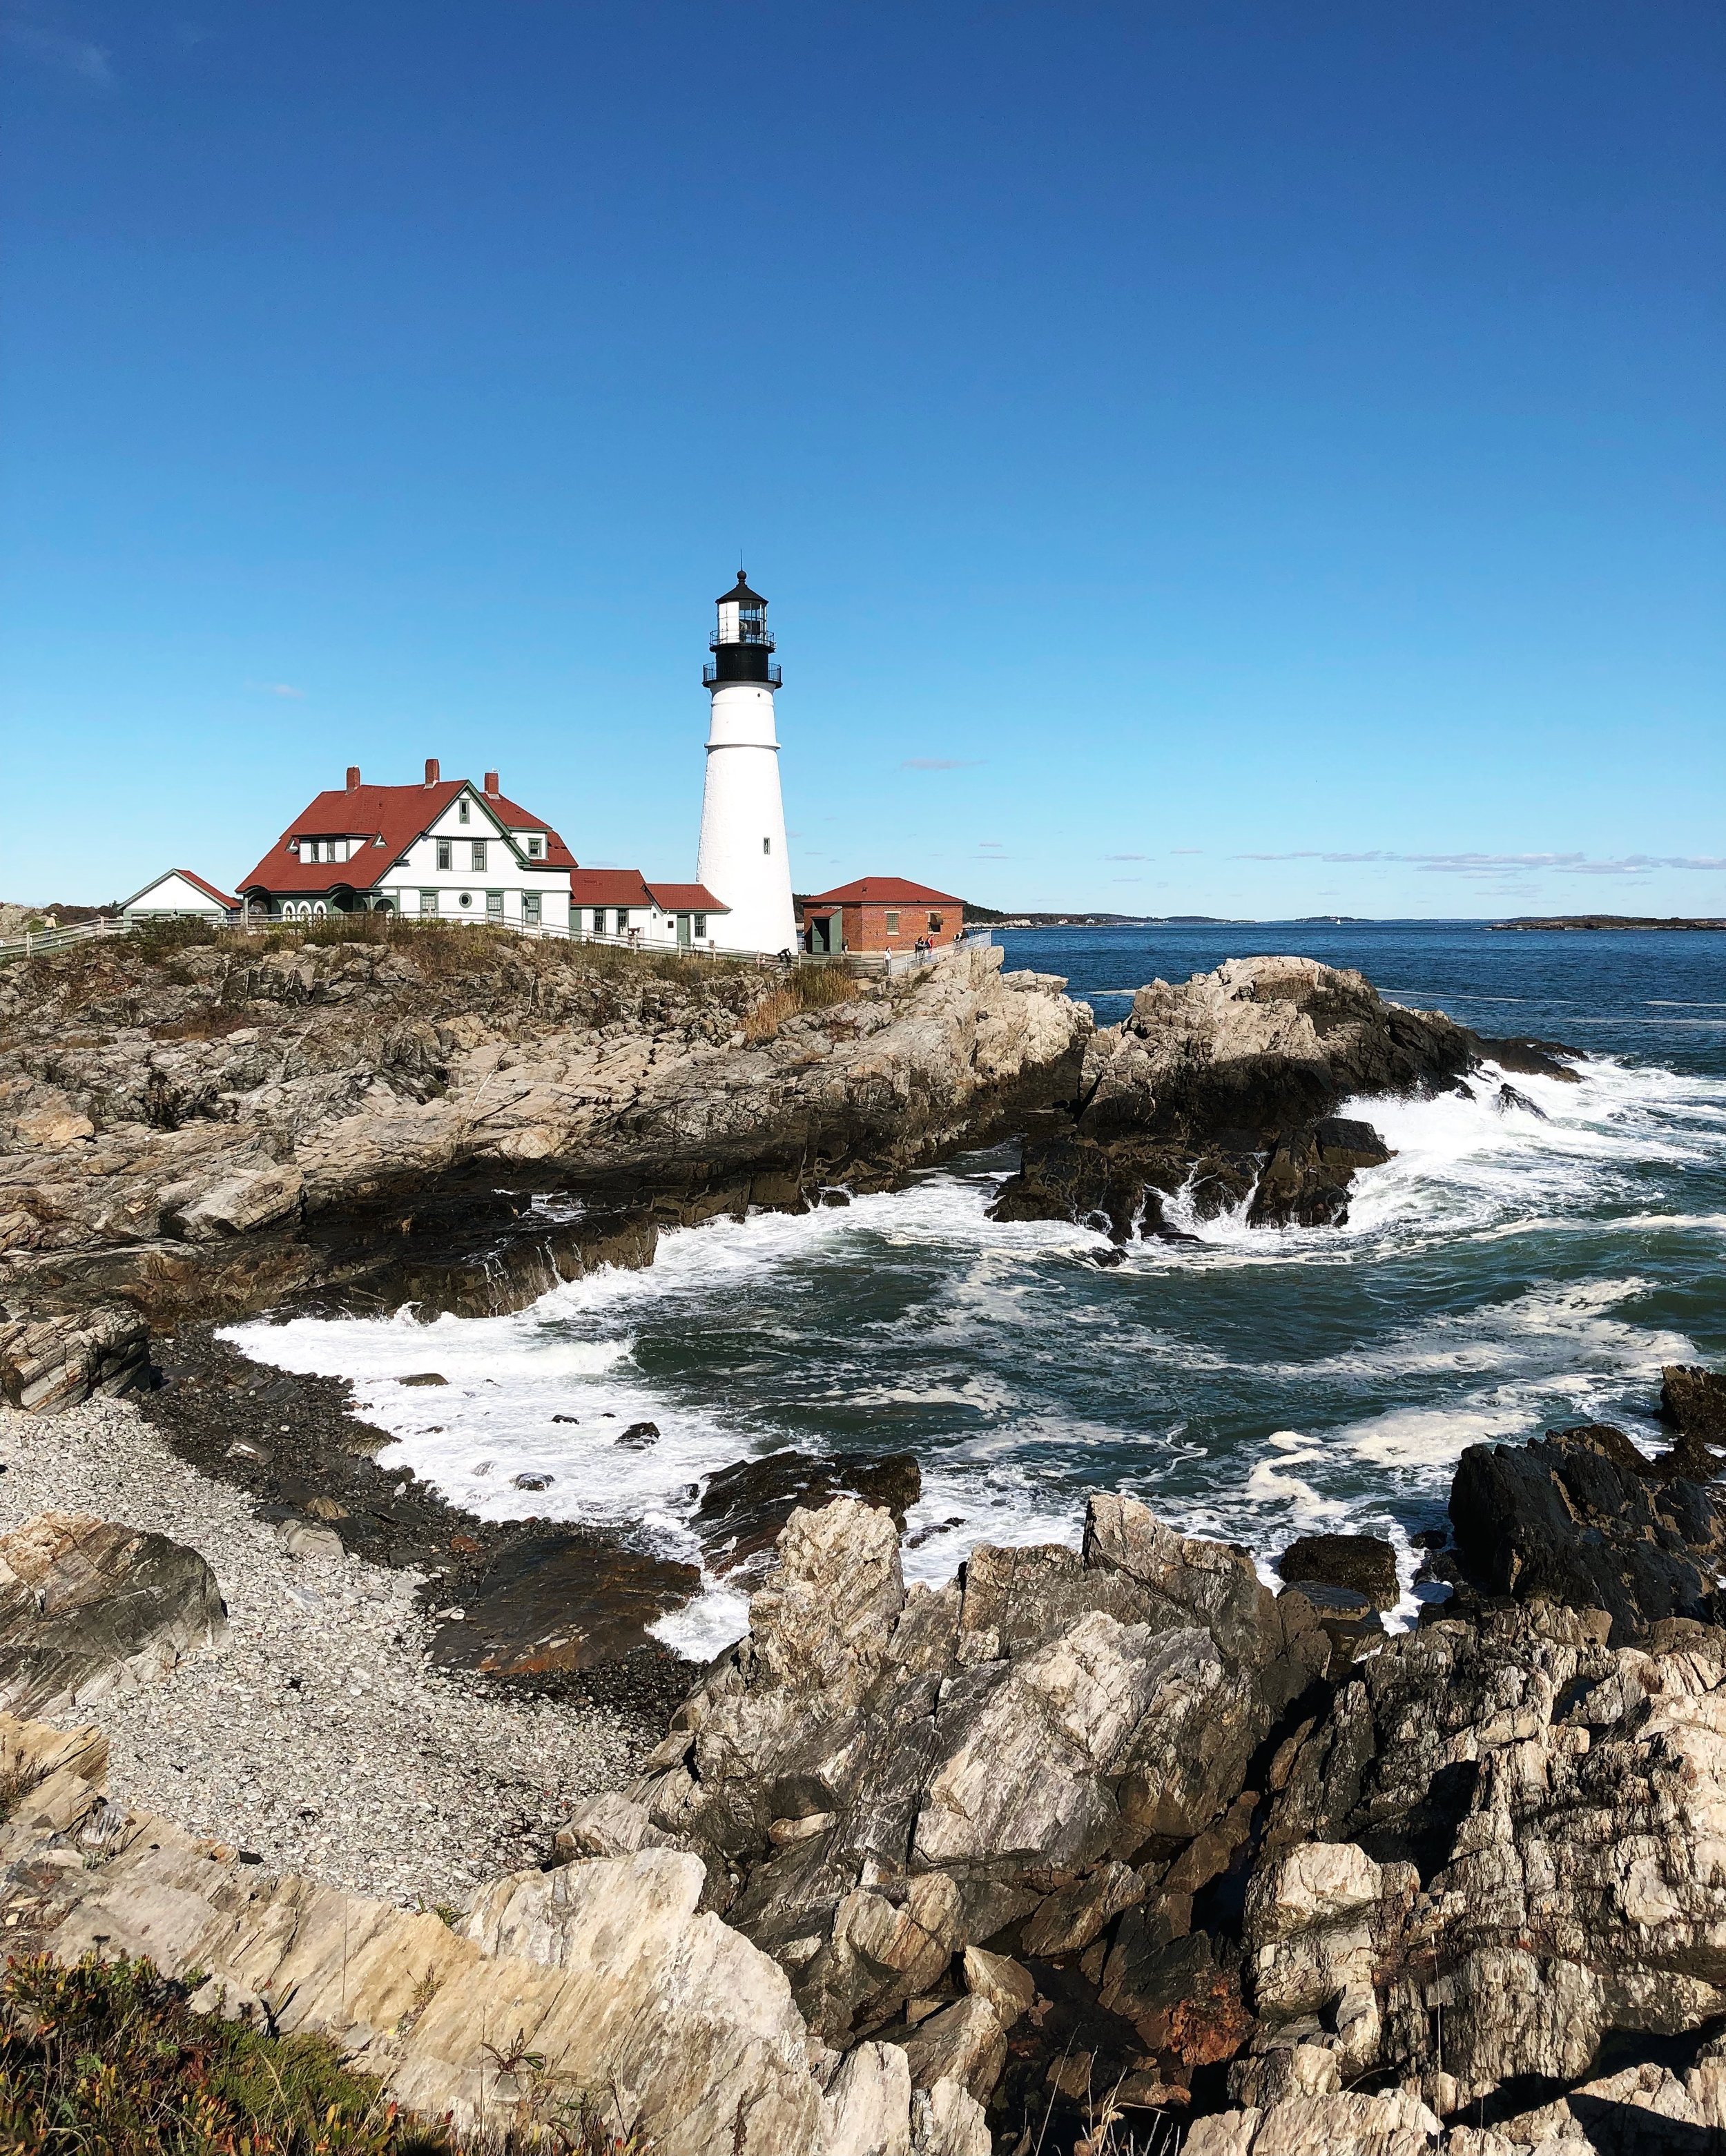 The Portland Head Lighthouse in all its glory